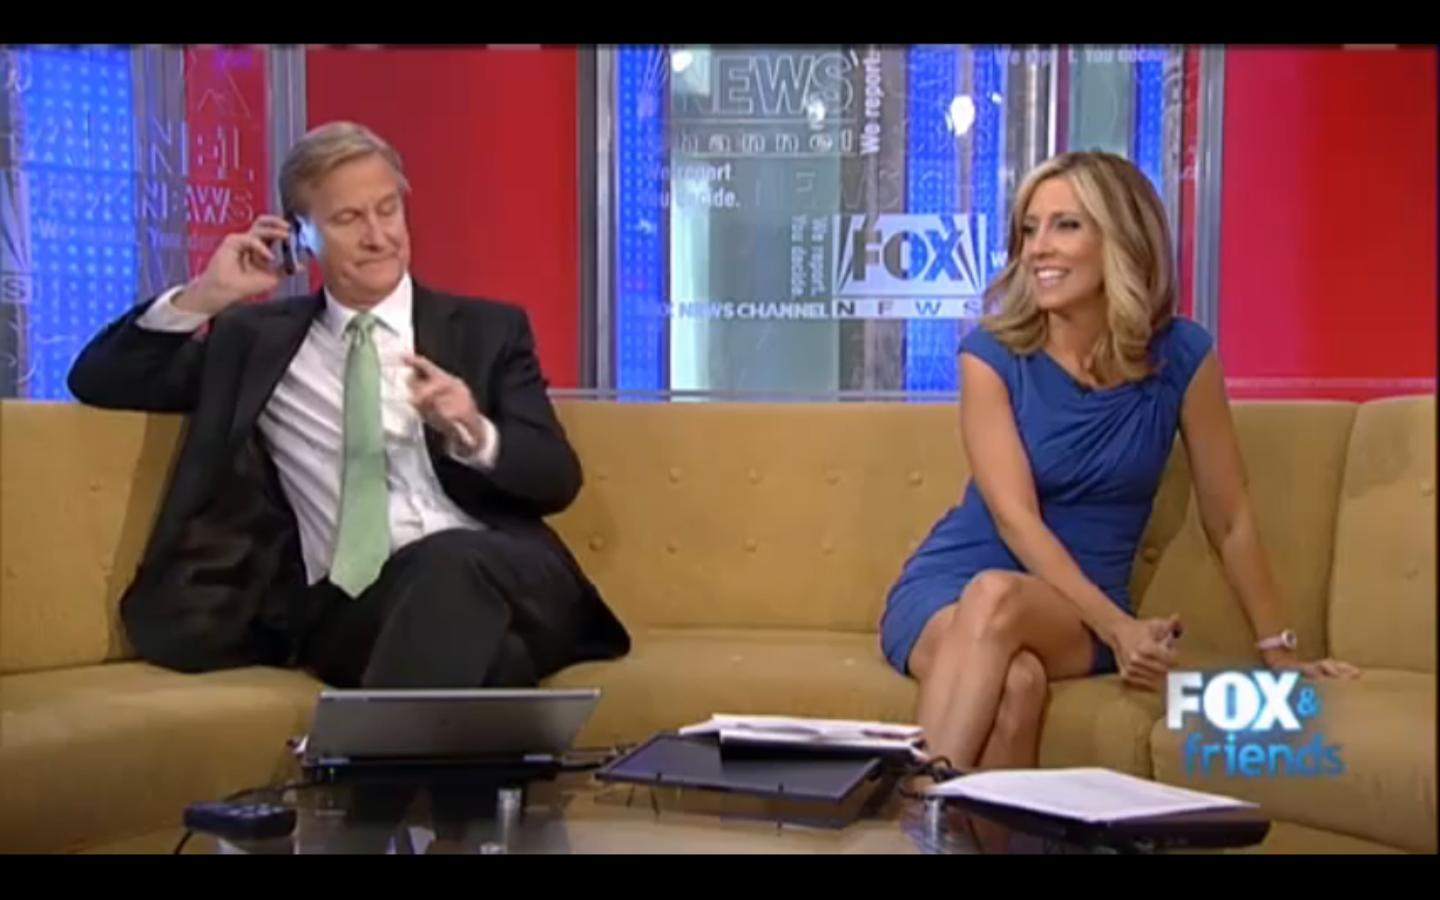 More Alisyn Camerota legs on the Fox & Friends couch